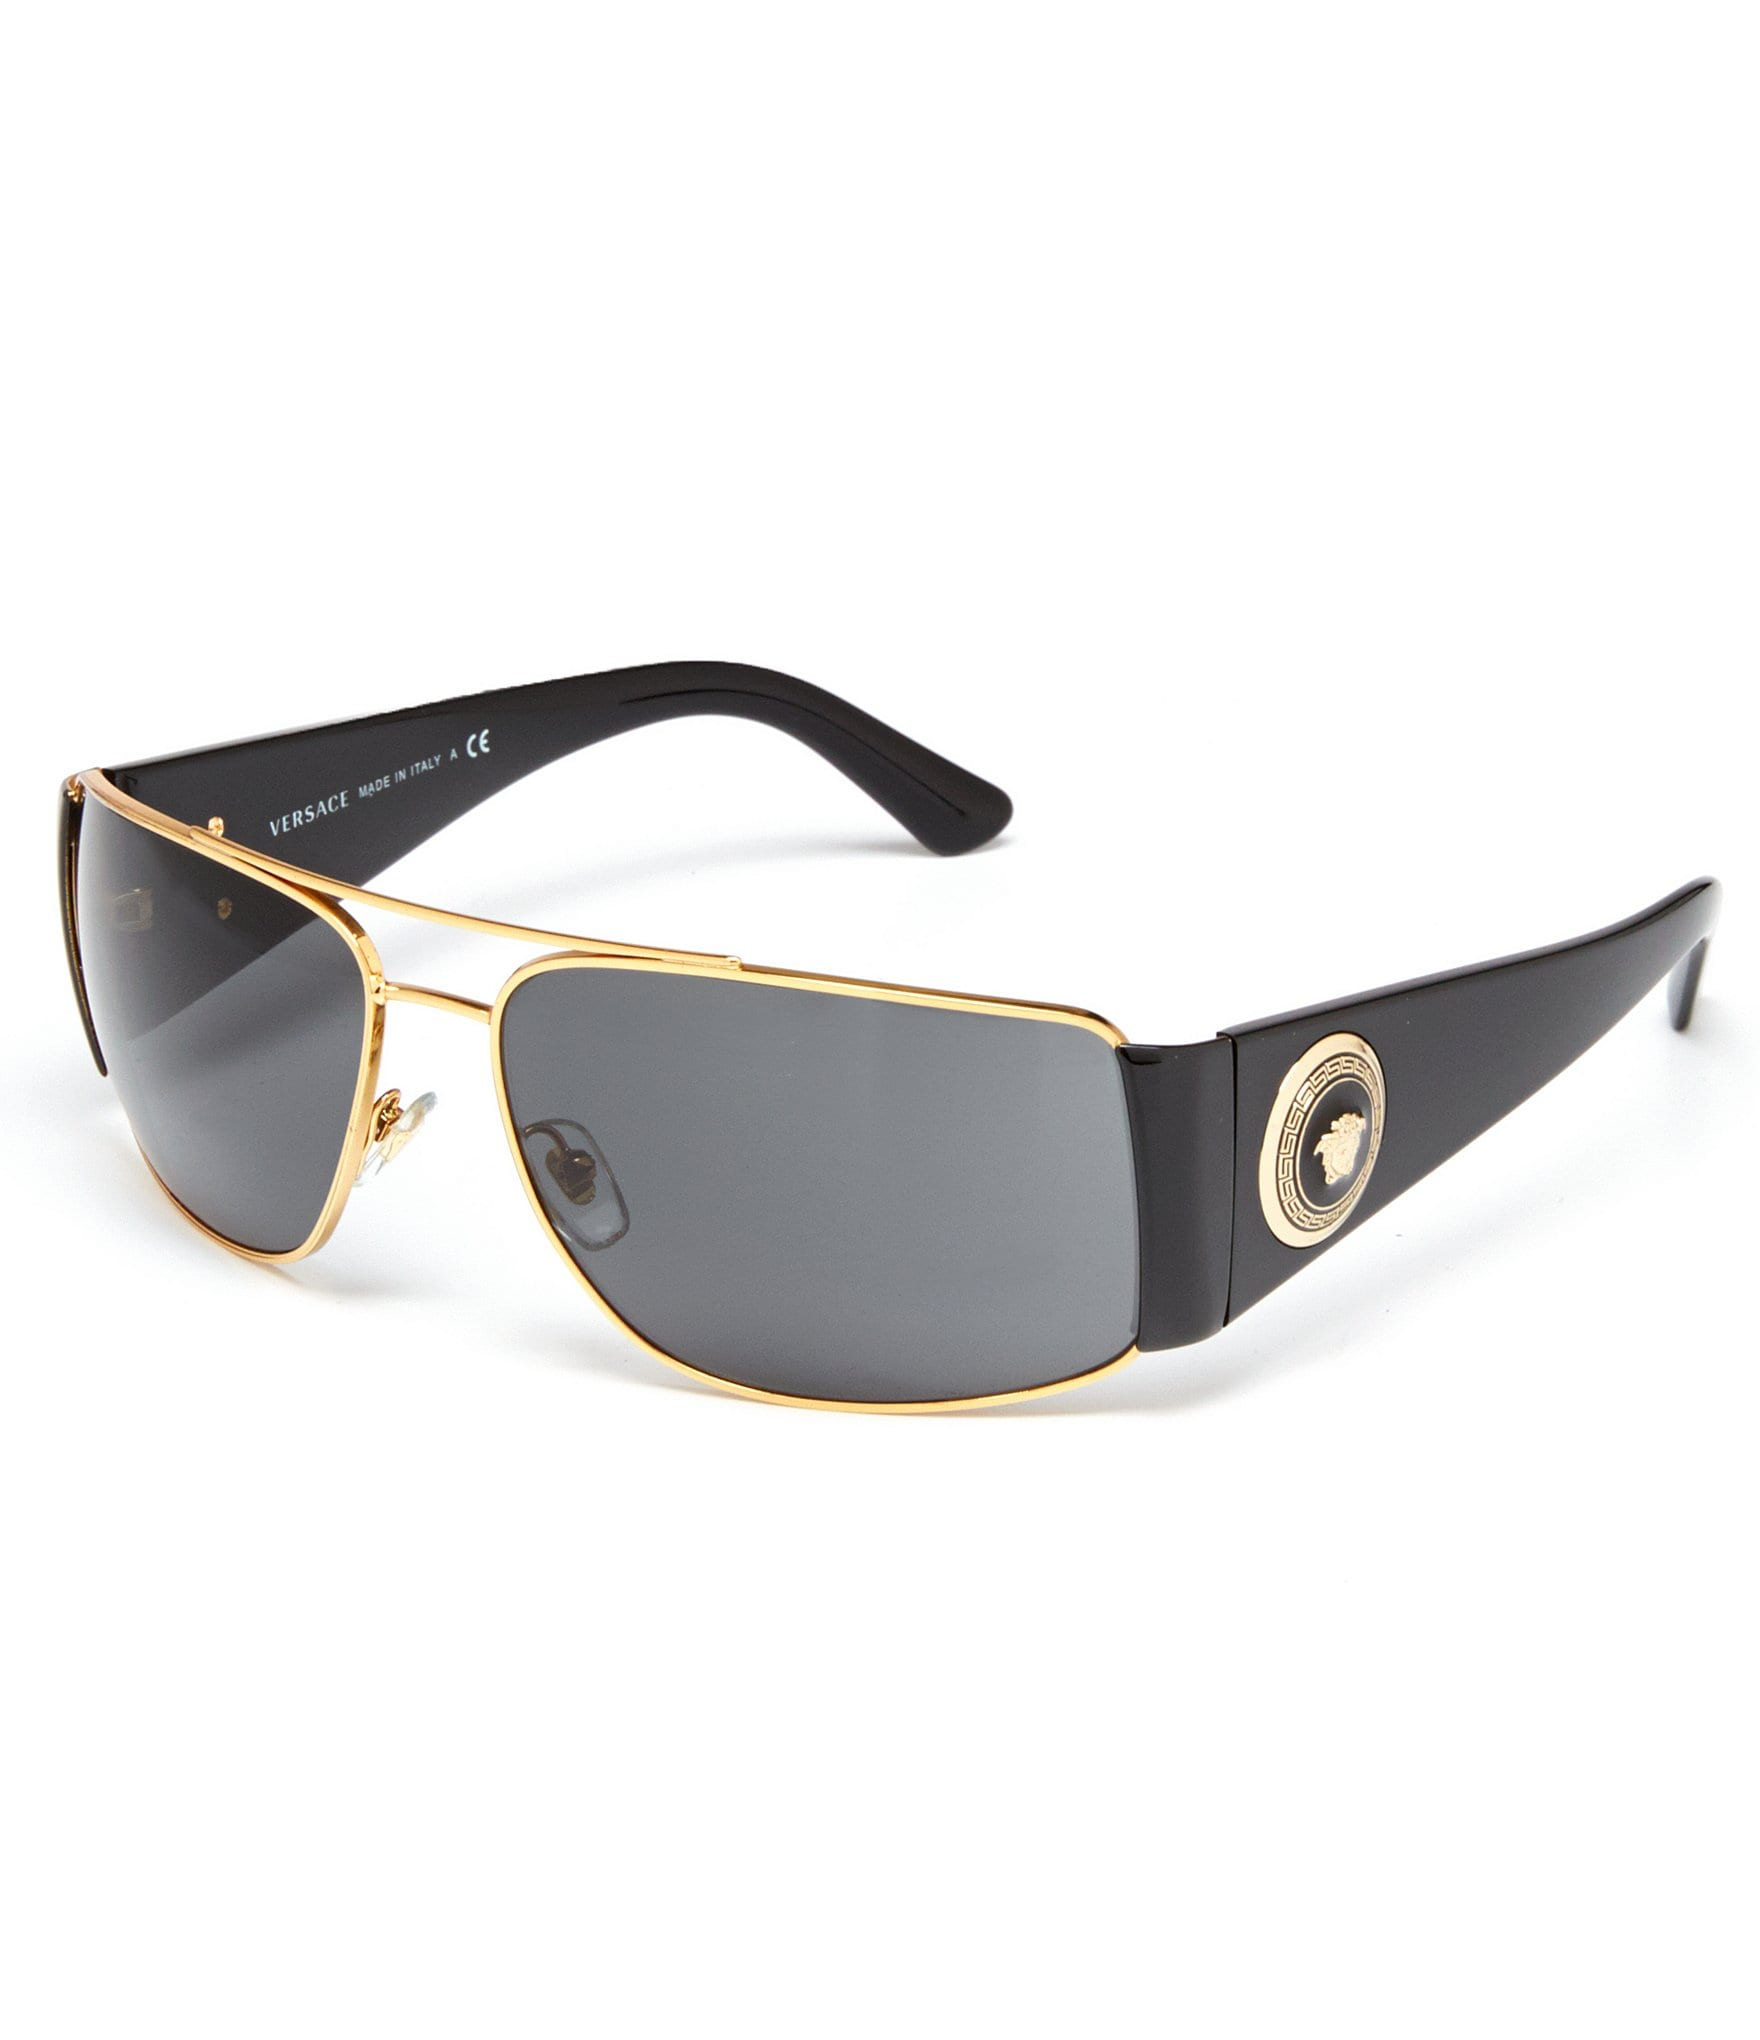 Sunglasses & Eyewear | Dillards